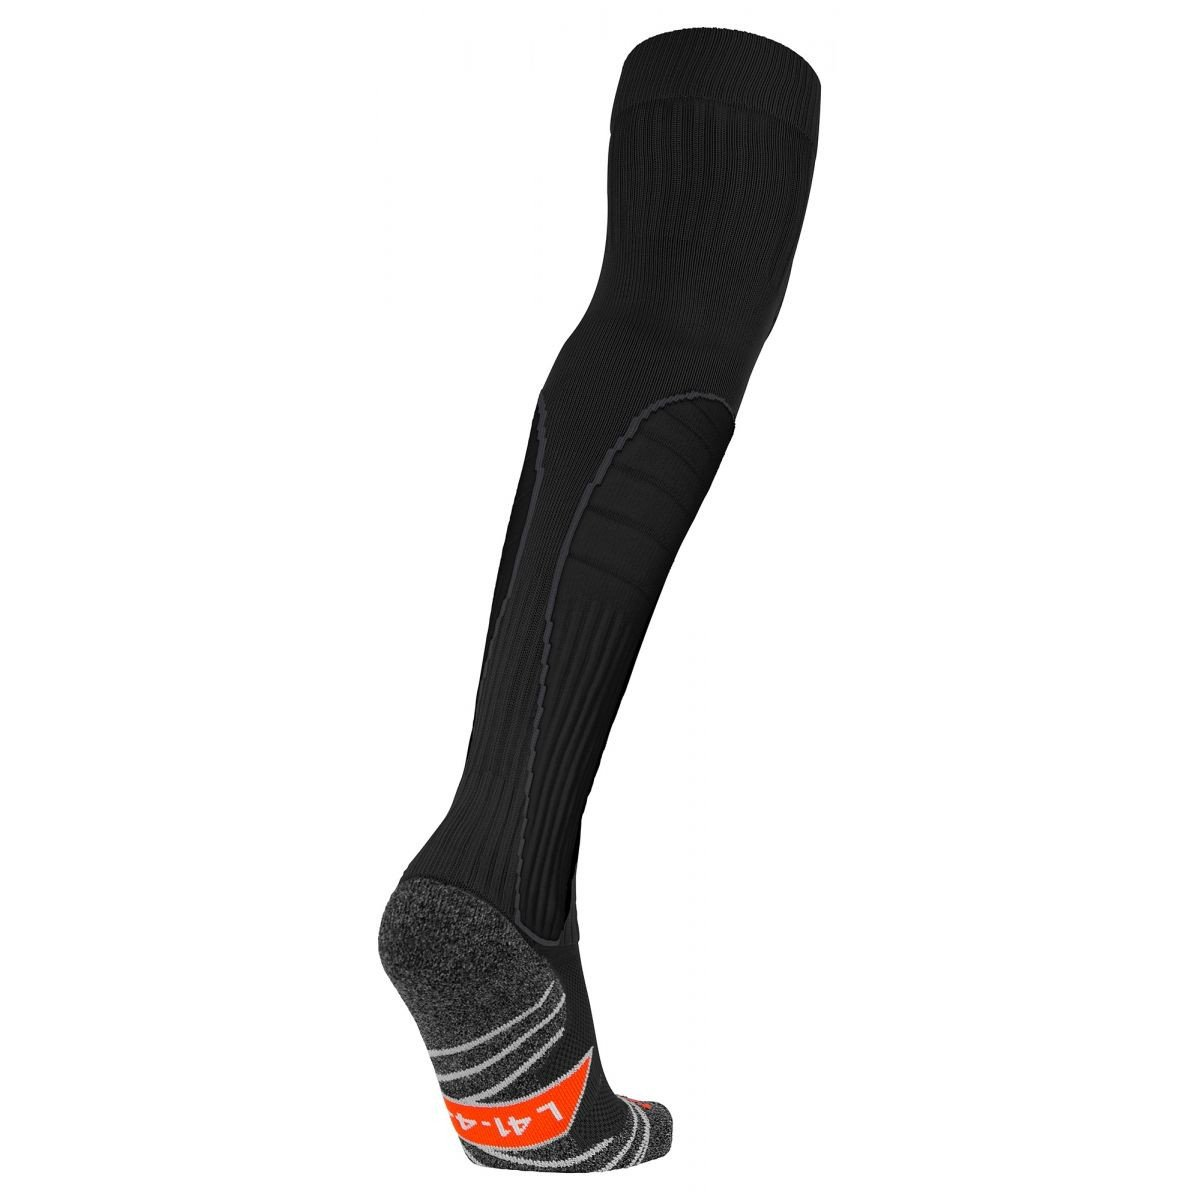 cff2a782b6a Stanno HIGH IMPACT GK Sock: Amazon.co.uk: Sports & Outdoors